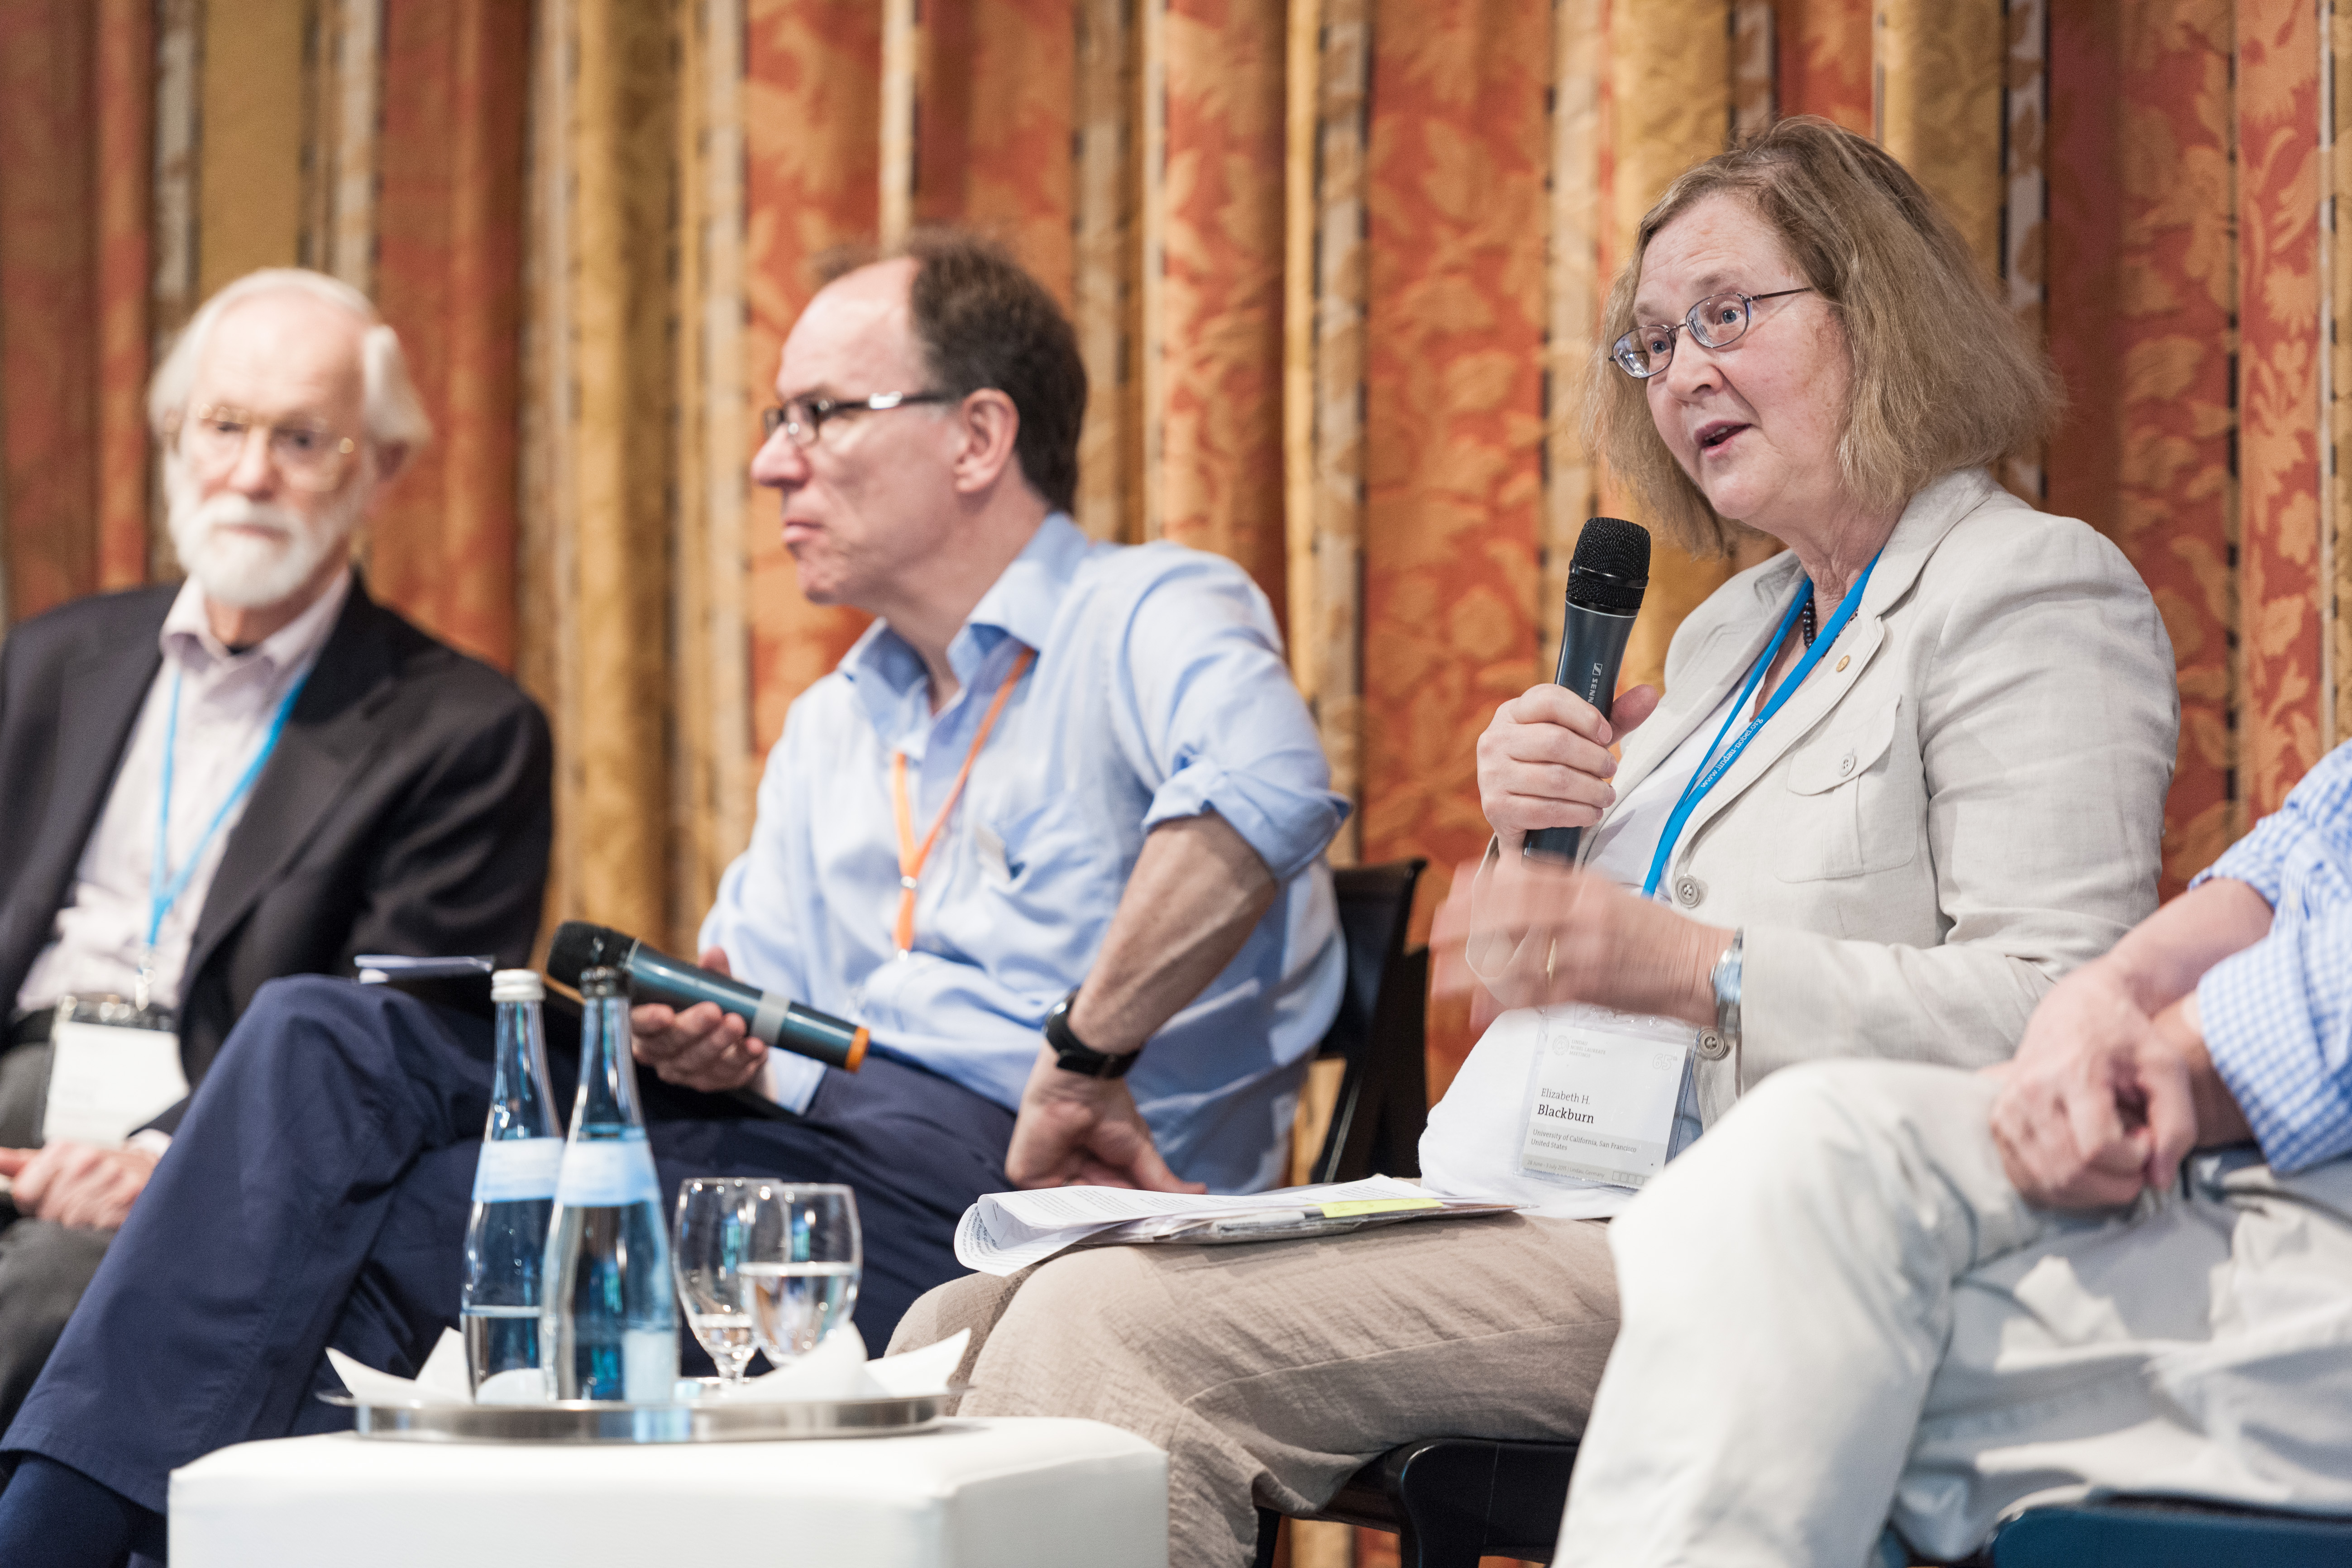 65th Lindau Nobel Laureate Meeting, Lindau, Germany, Picture/Credit: Adrian Schröder/Lindau Nobel Laureate Meetings, 29 June 2015 Elizabeth Blackburn, Michael Bishop, Richard Roberts, Presstalk at Forum am See No Model Release. No Property Release. Fre